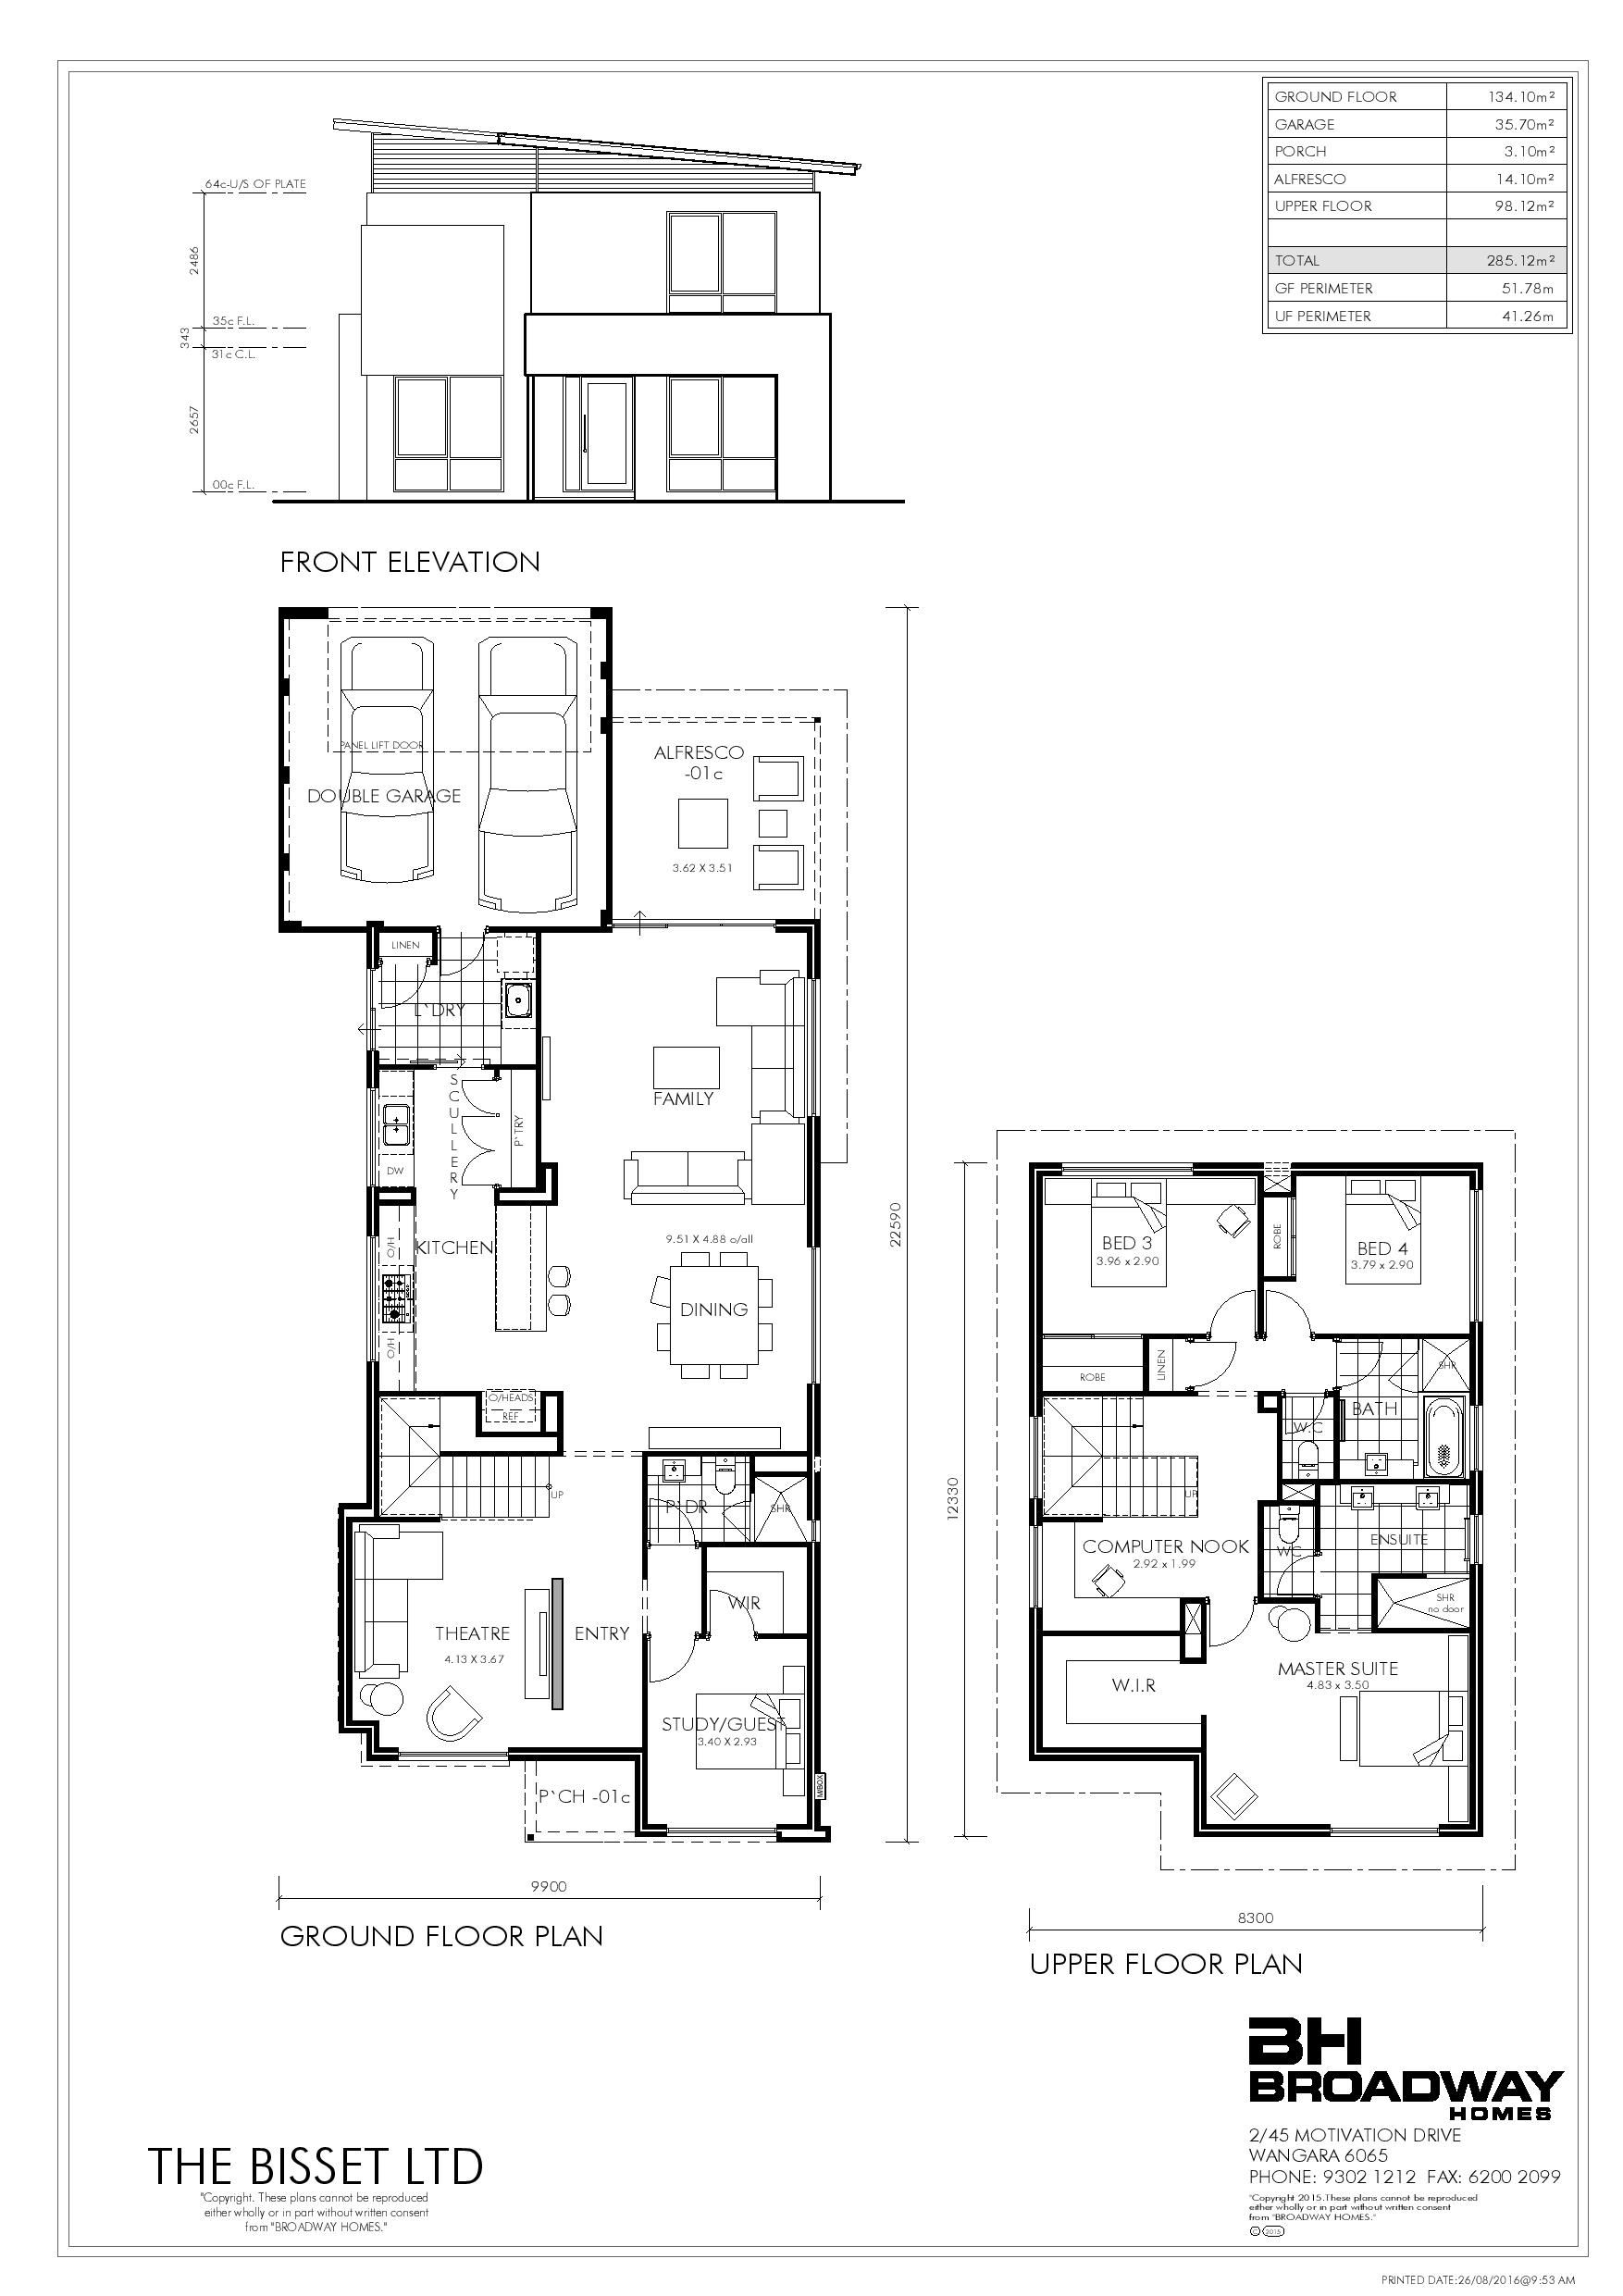 The Bisset Ltd Limited Edition Designs Broadway Homes Floor Plans House Plans Ground Floor Plan